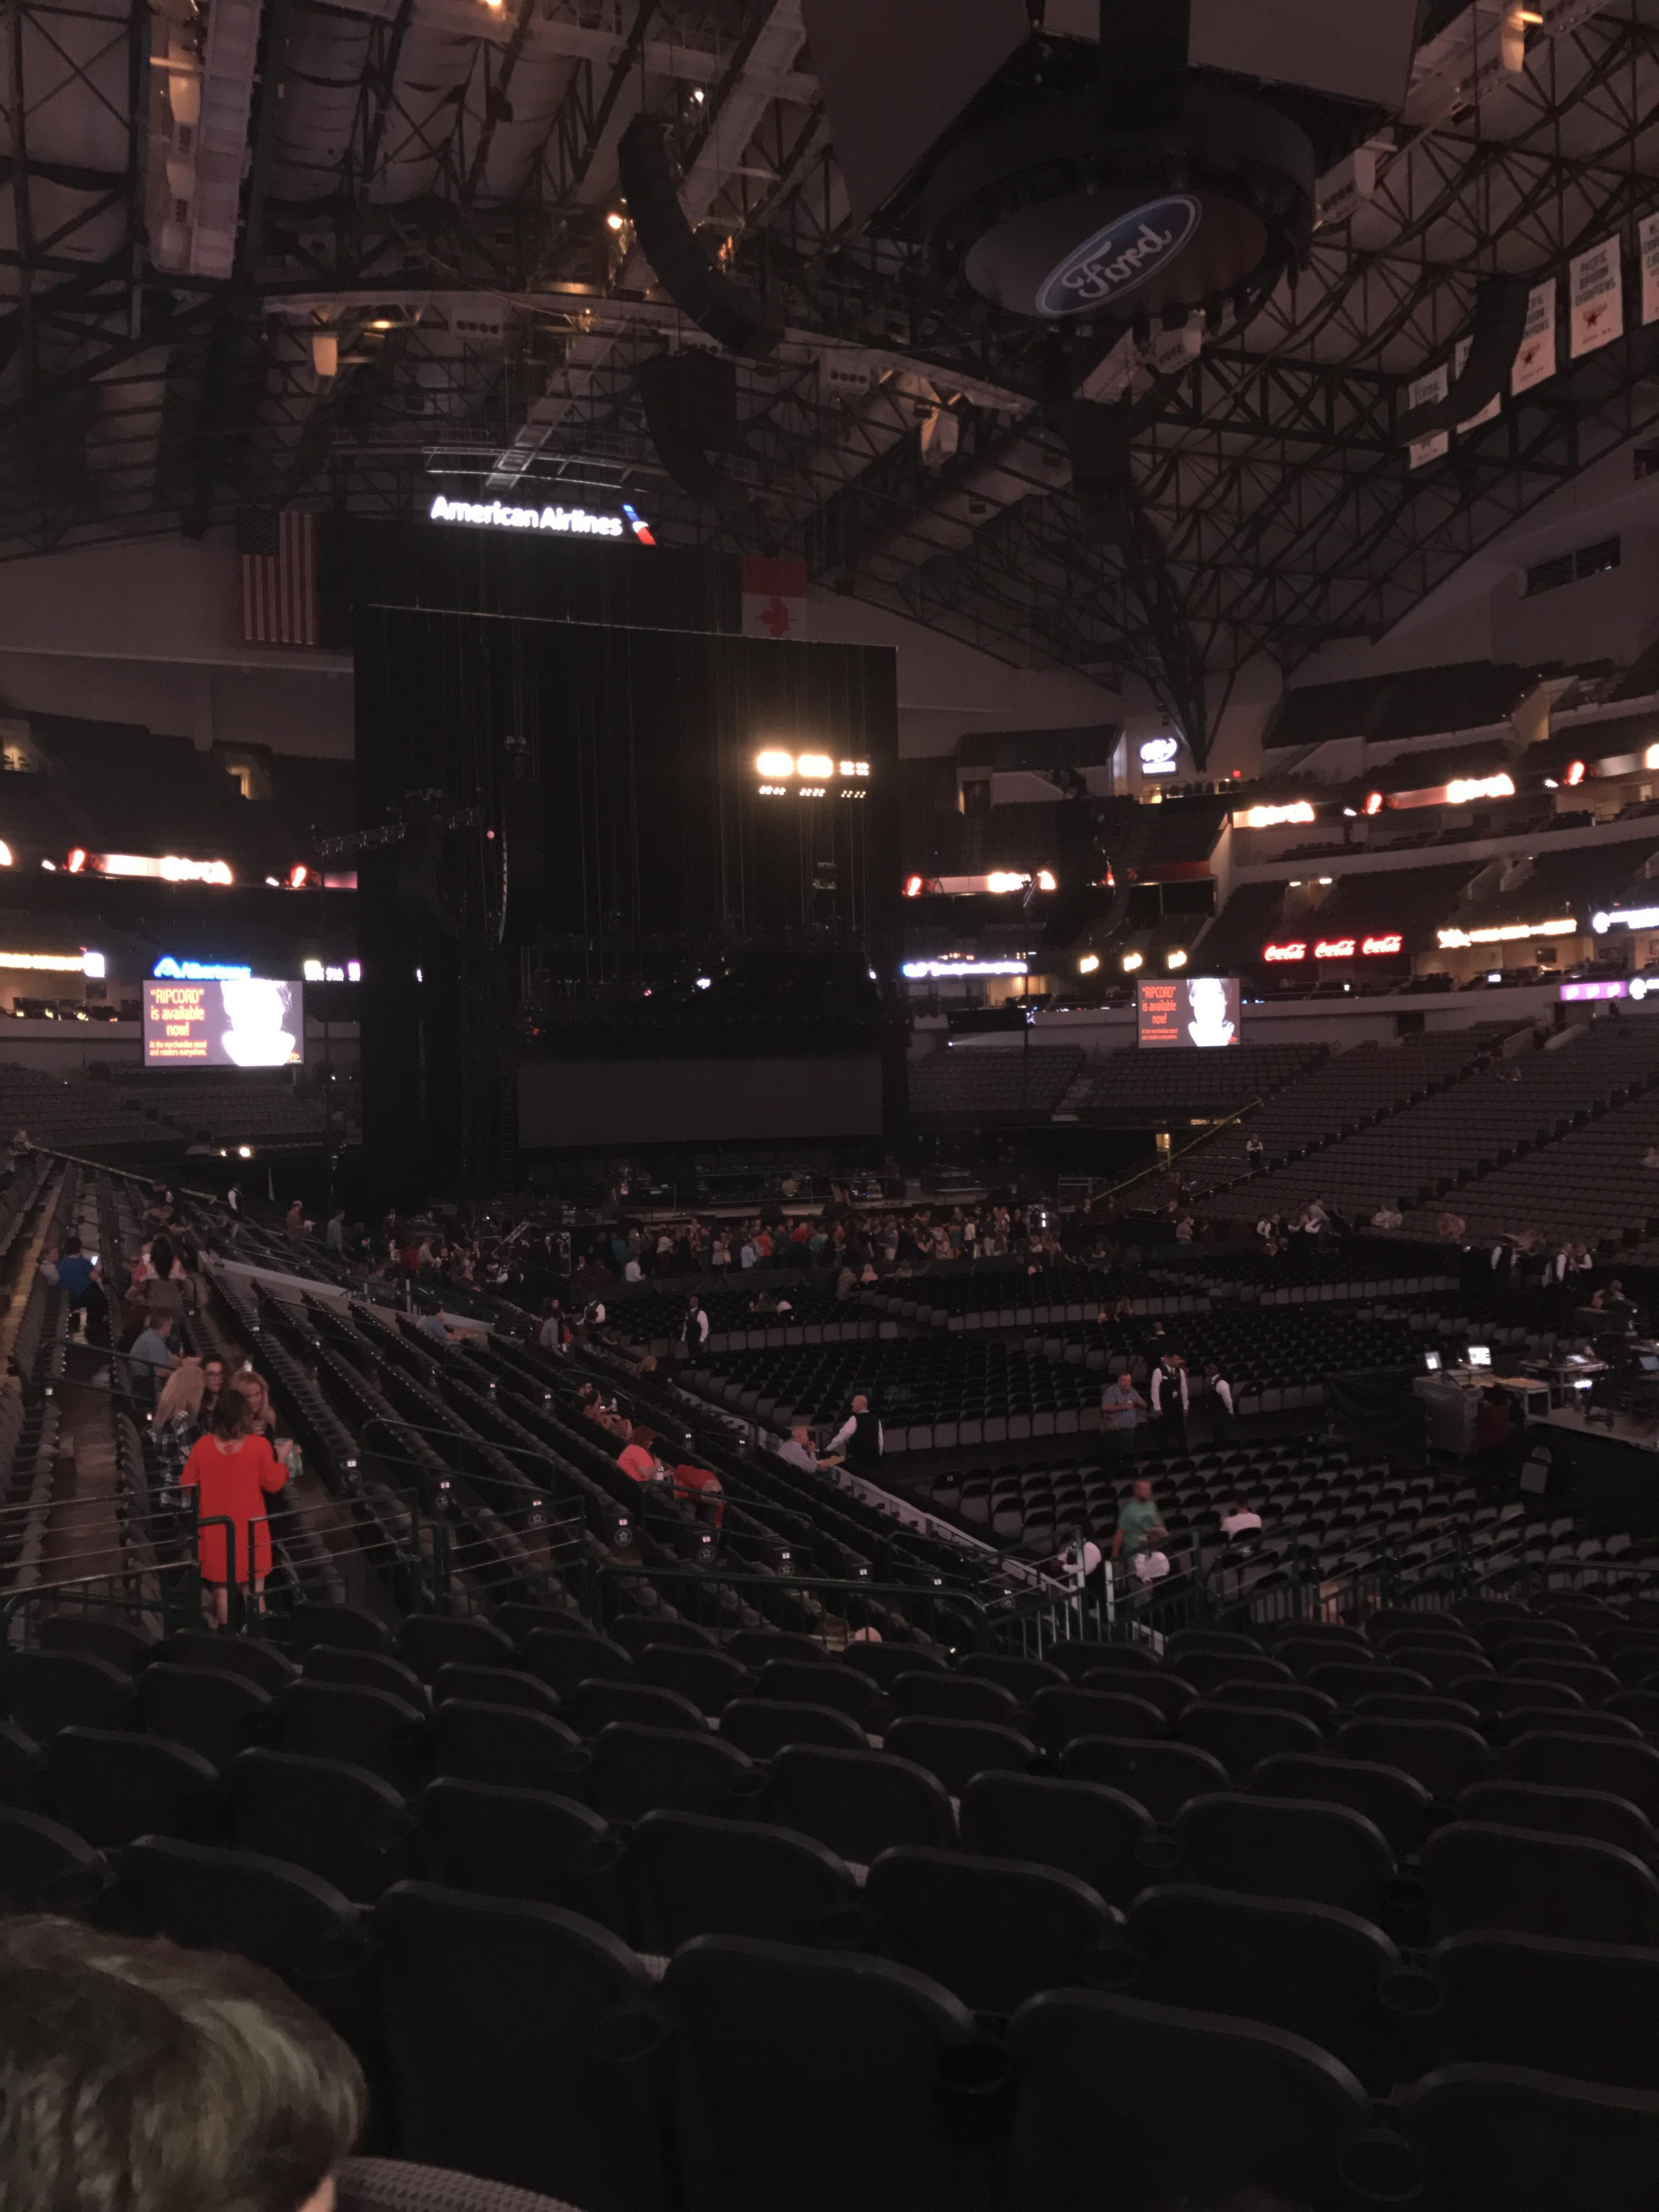 American Airlines Center Section 115 Row T Seat 4